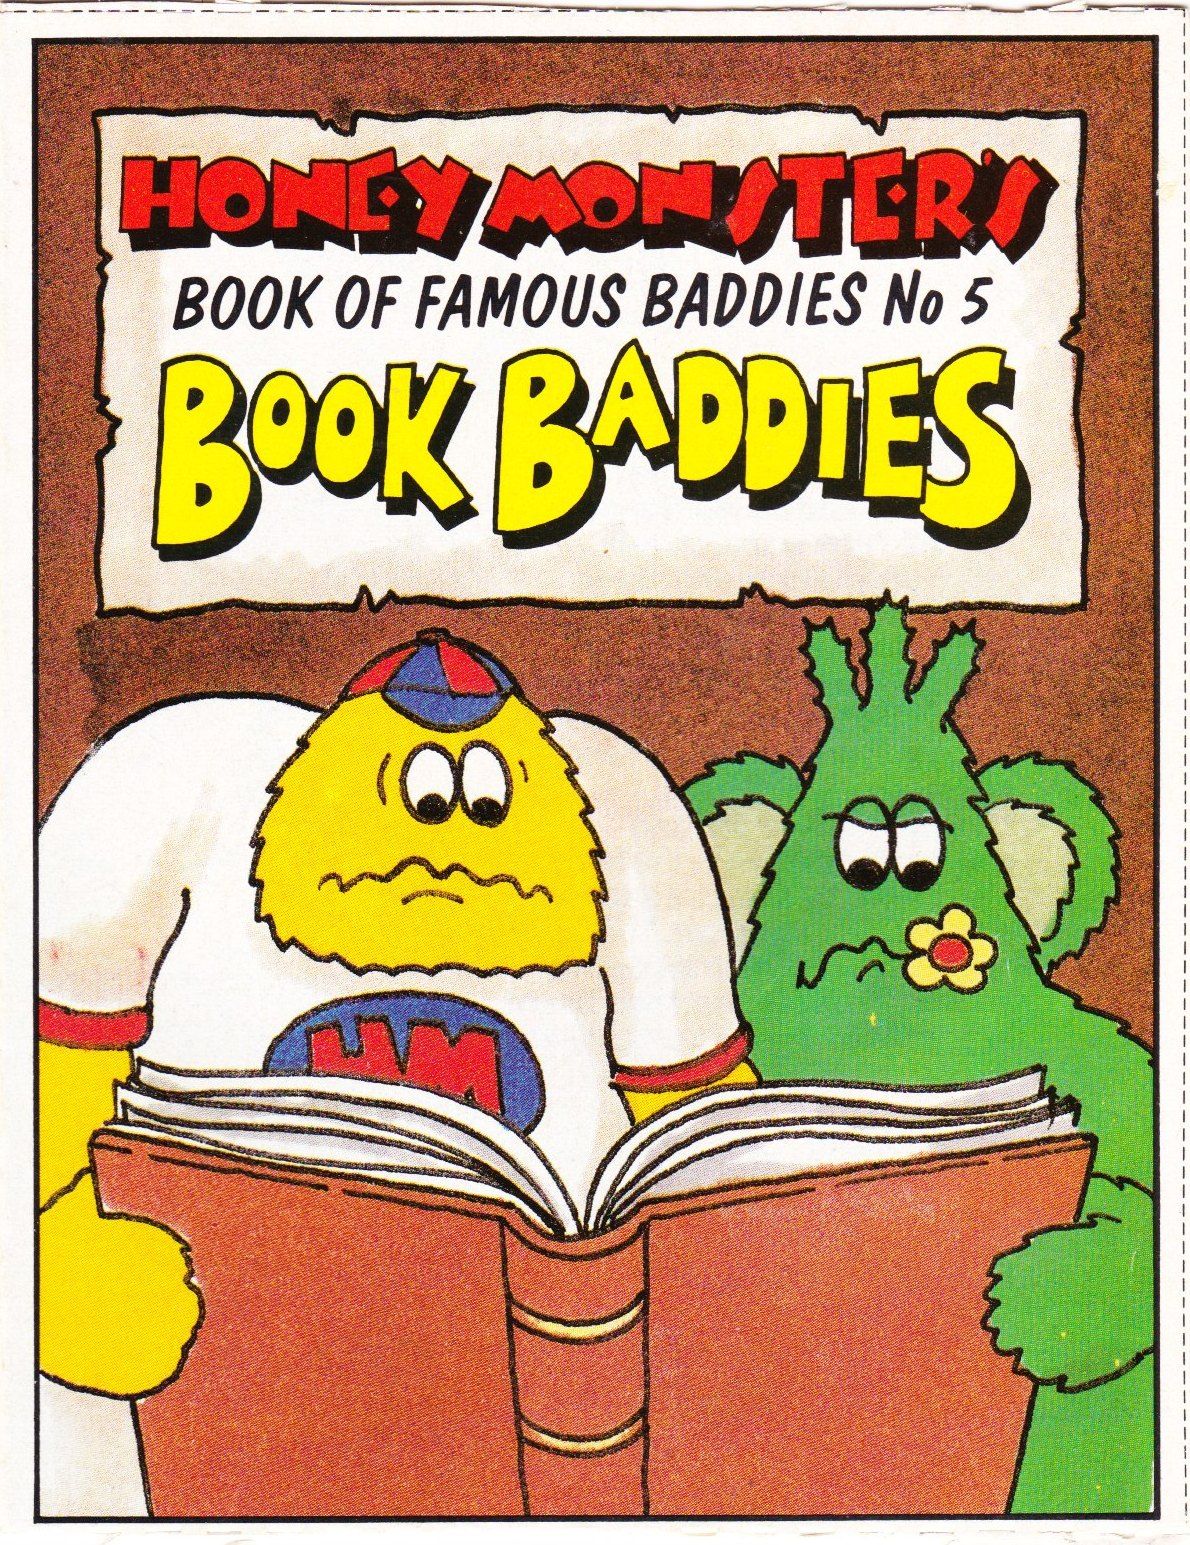 1986 Sugar Puffs Book of Famous Baddies No 5 Book (1)